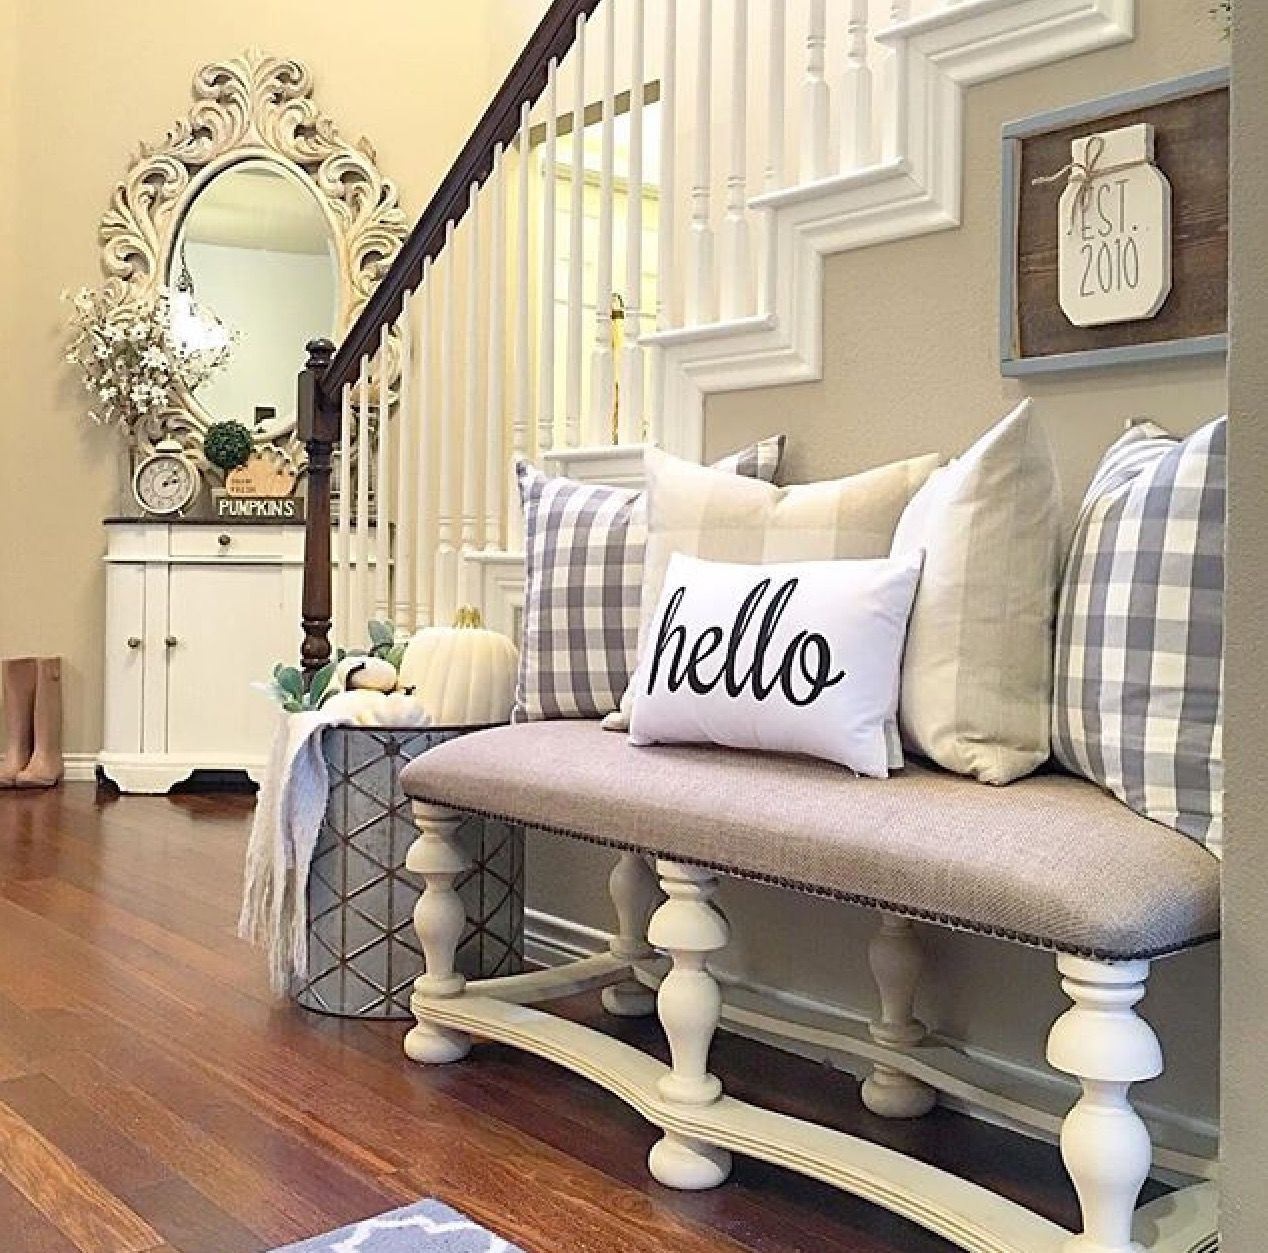 Best Entry 1 Decorating Ideas Furniture Home Decor Hallway This Month